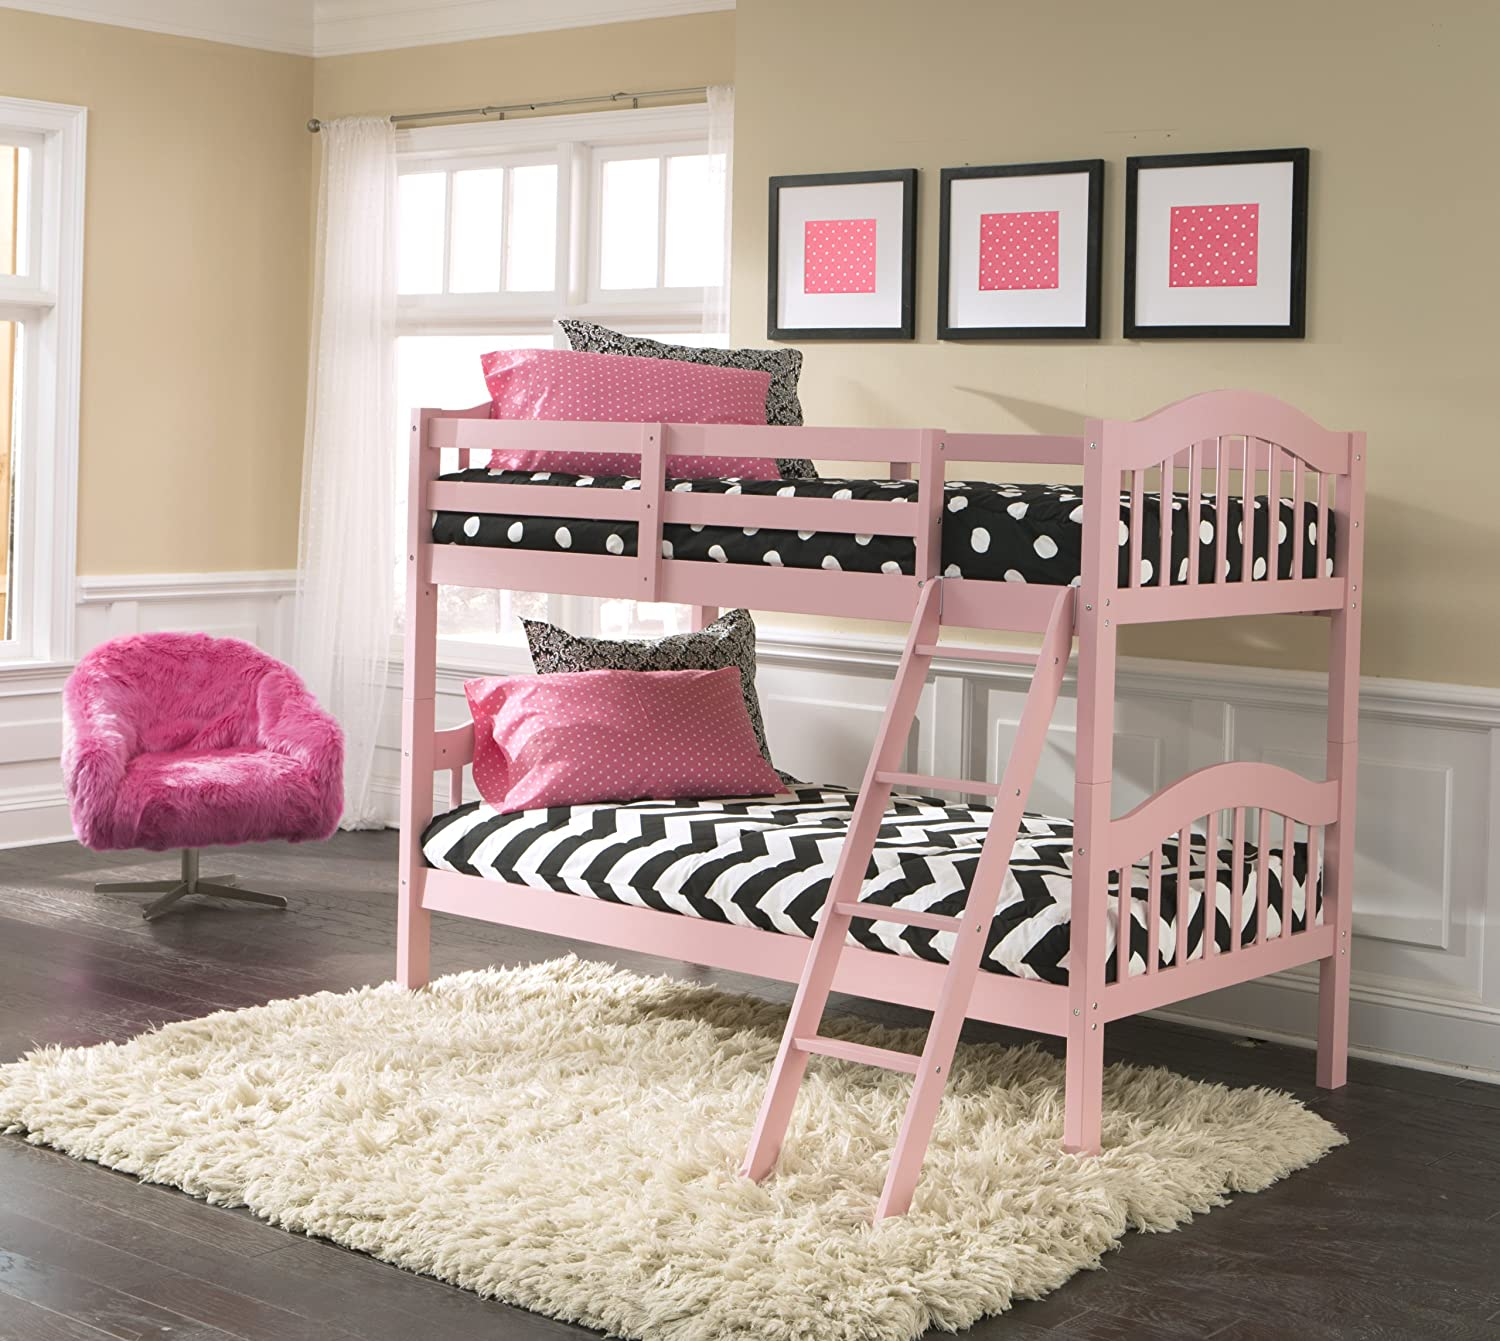 canopy charming girl girls kids room to for furniture create bedding apartment your little sets beds enjoyable childrens twin ways bed cheap